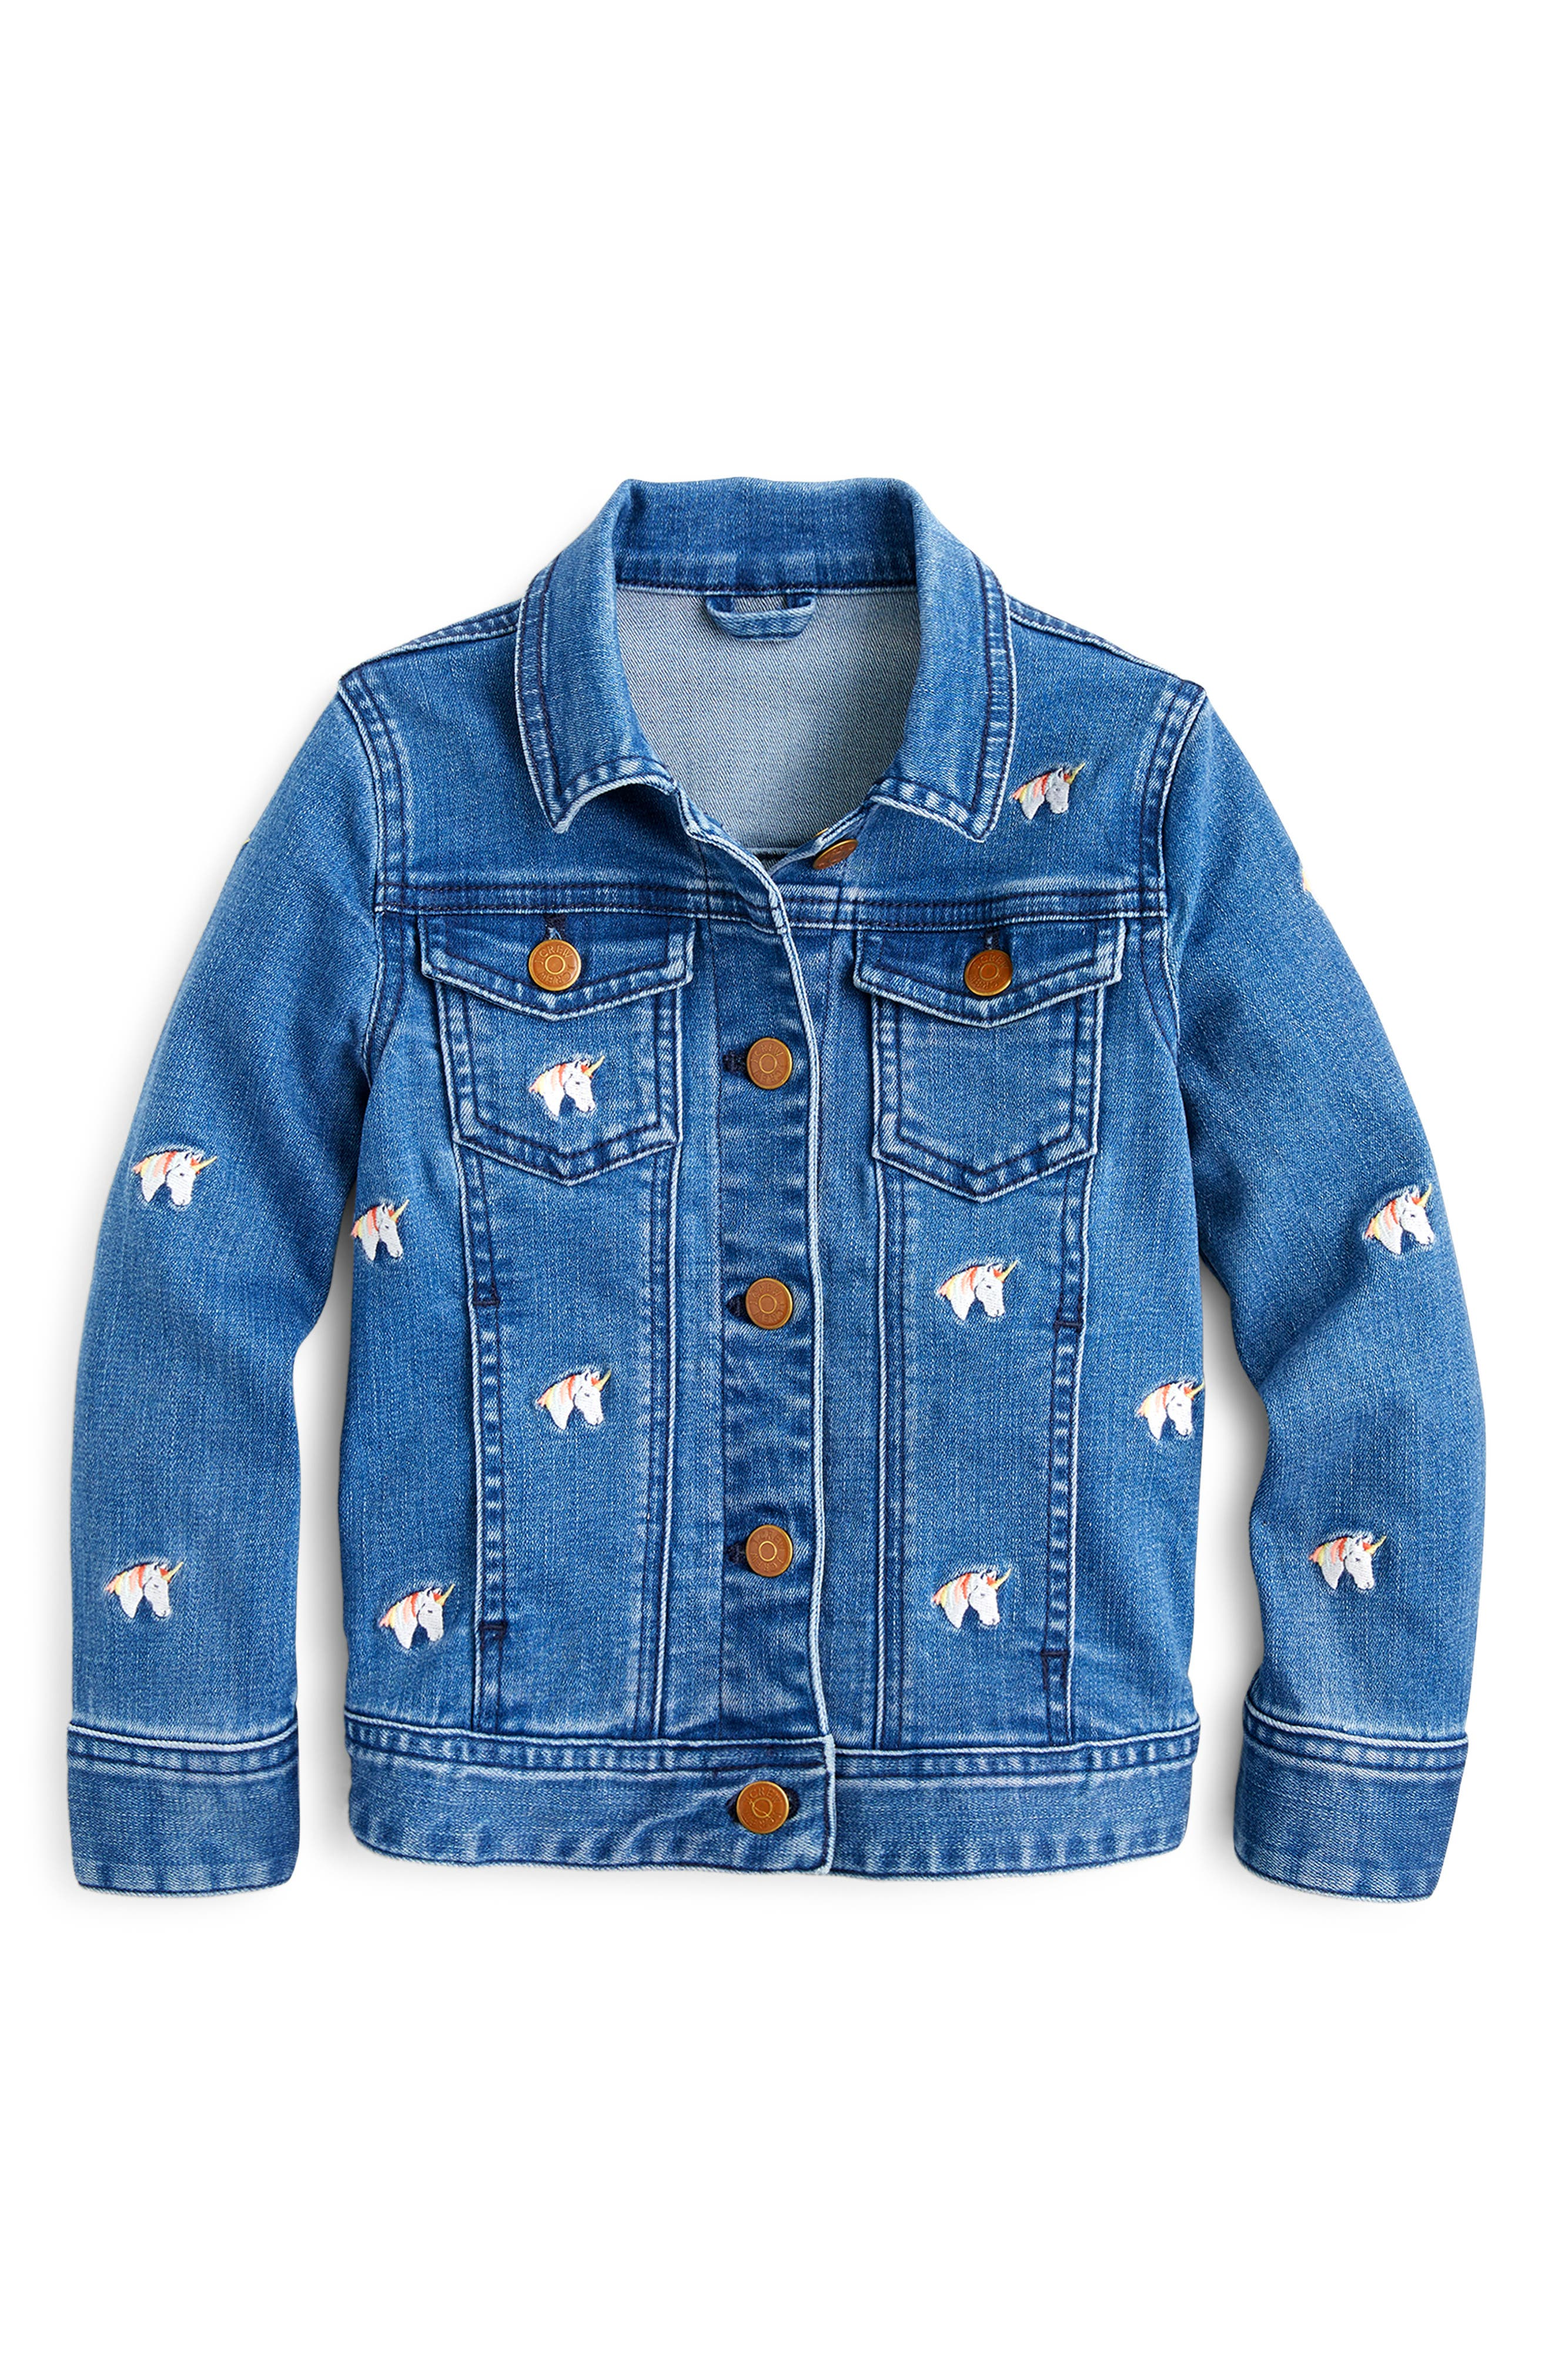 Toddler Girls Crewcuts By Jcrew Embroidered Unicorn Stretch Denim Jacket Size 2T  Blue